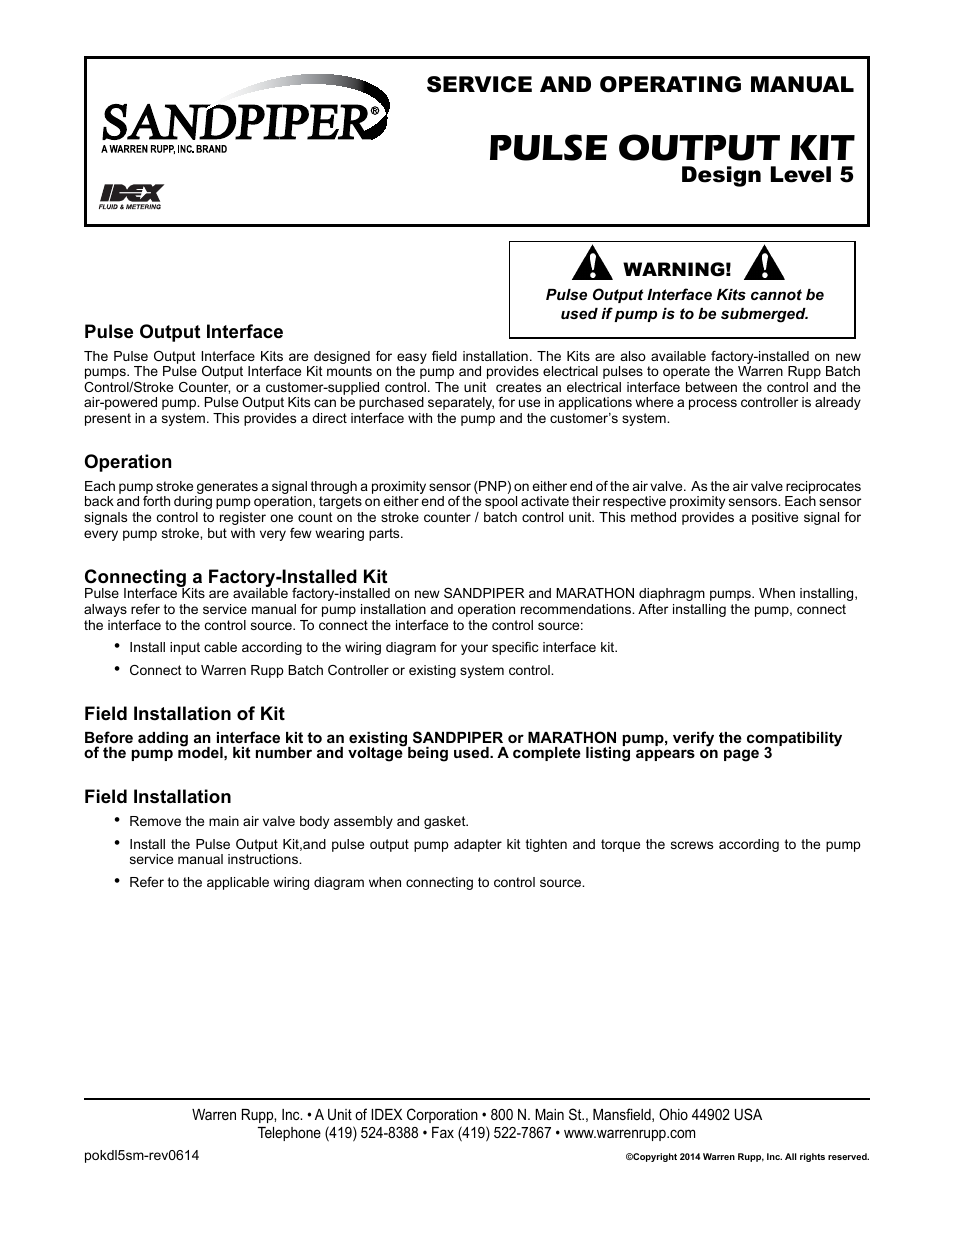 Sandpiper Pulse Output Kit User Manual 18 Pages Wiring Diagram Batch Controler